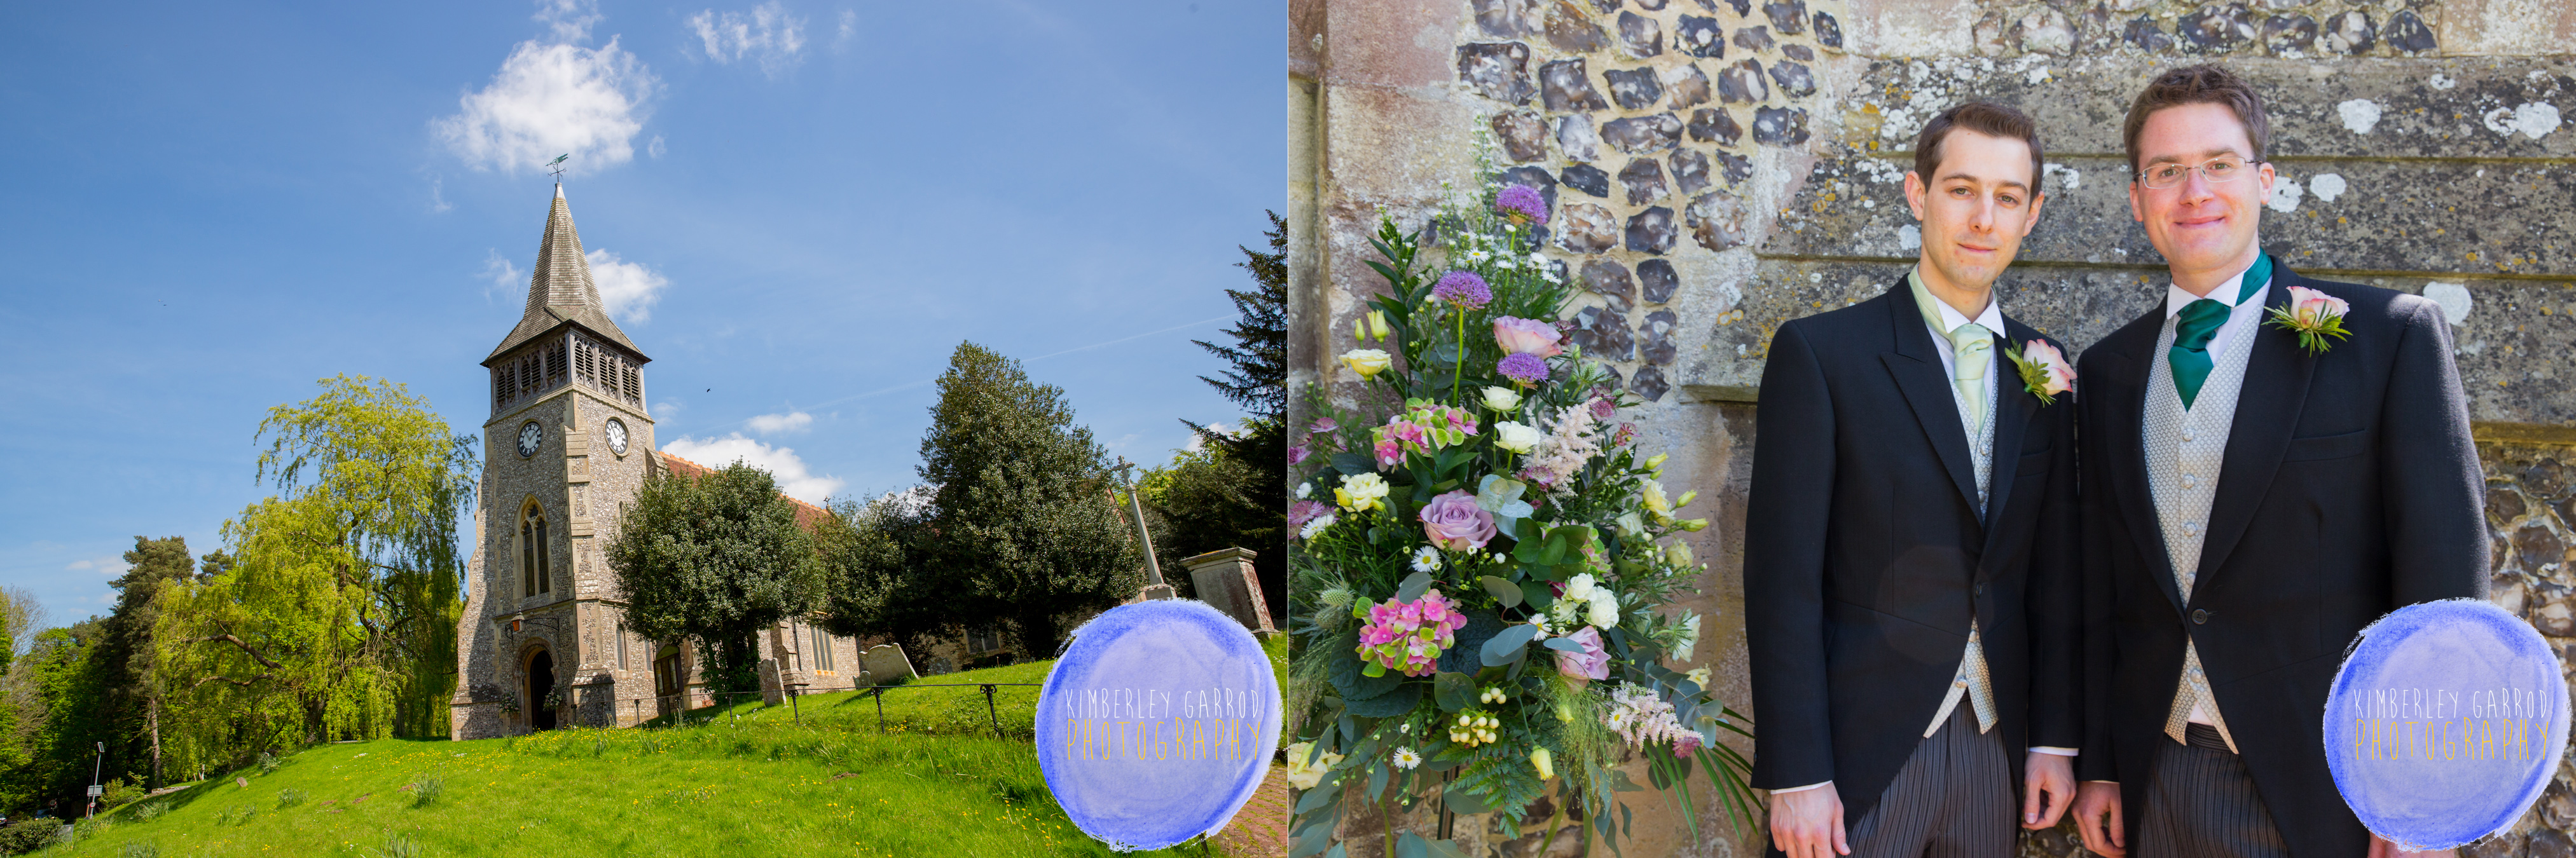 Wickham Church Wedding Kimberley Garrod Photography